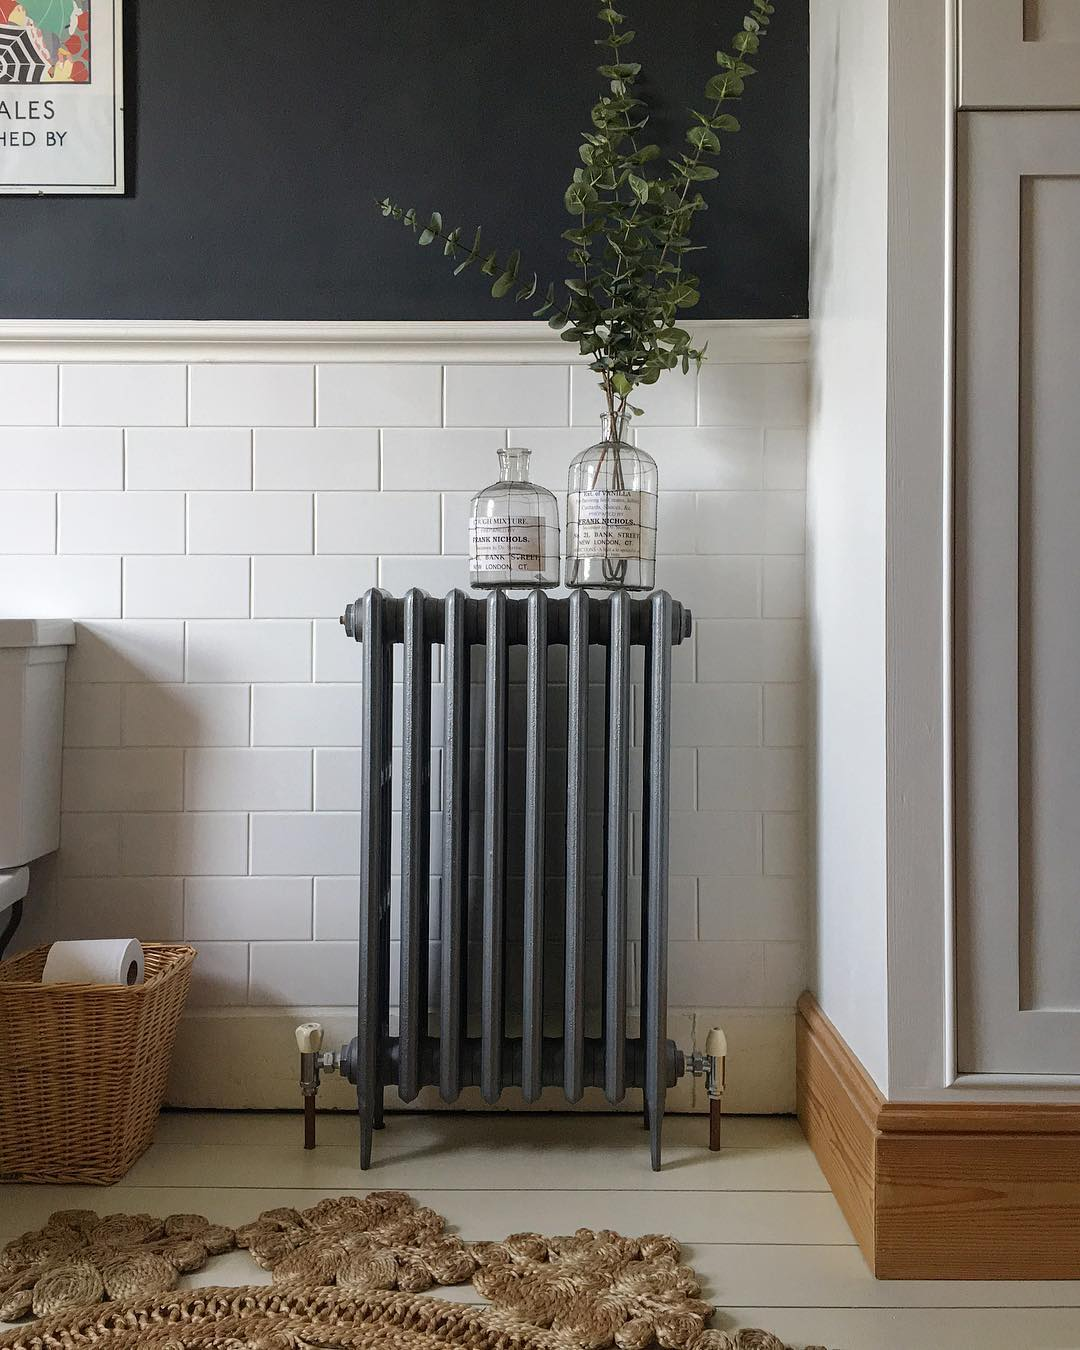 A grey cast-iron radiator on a white wall.